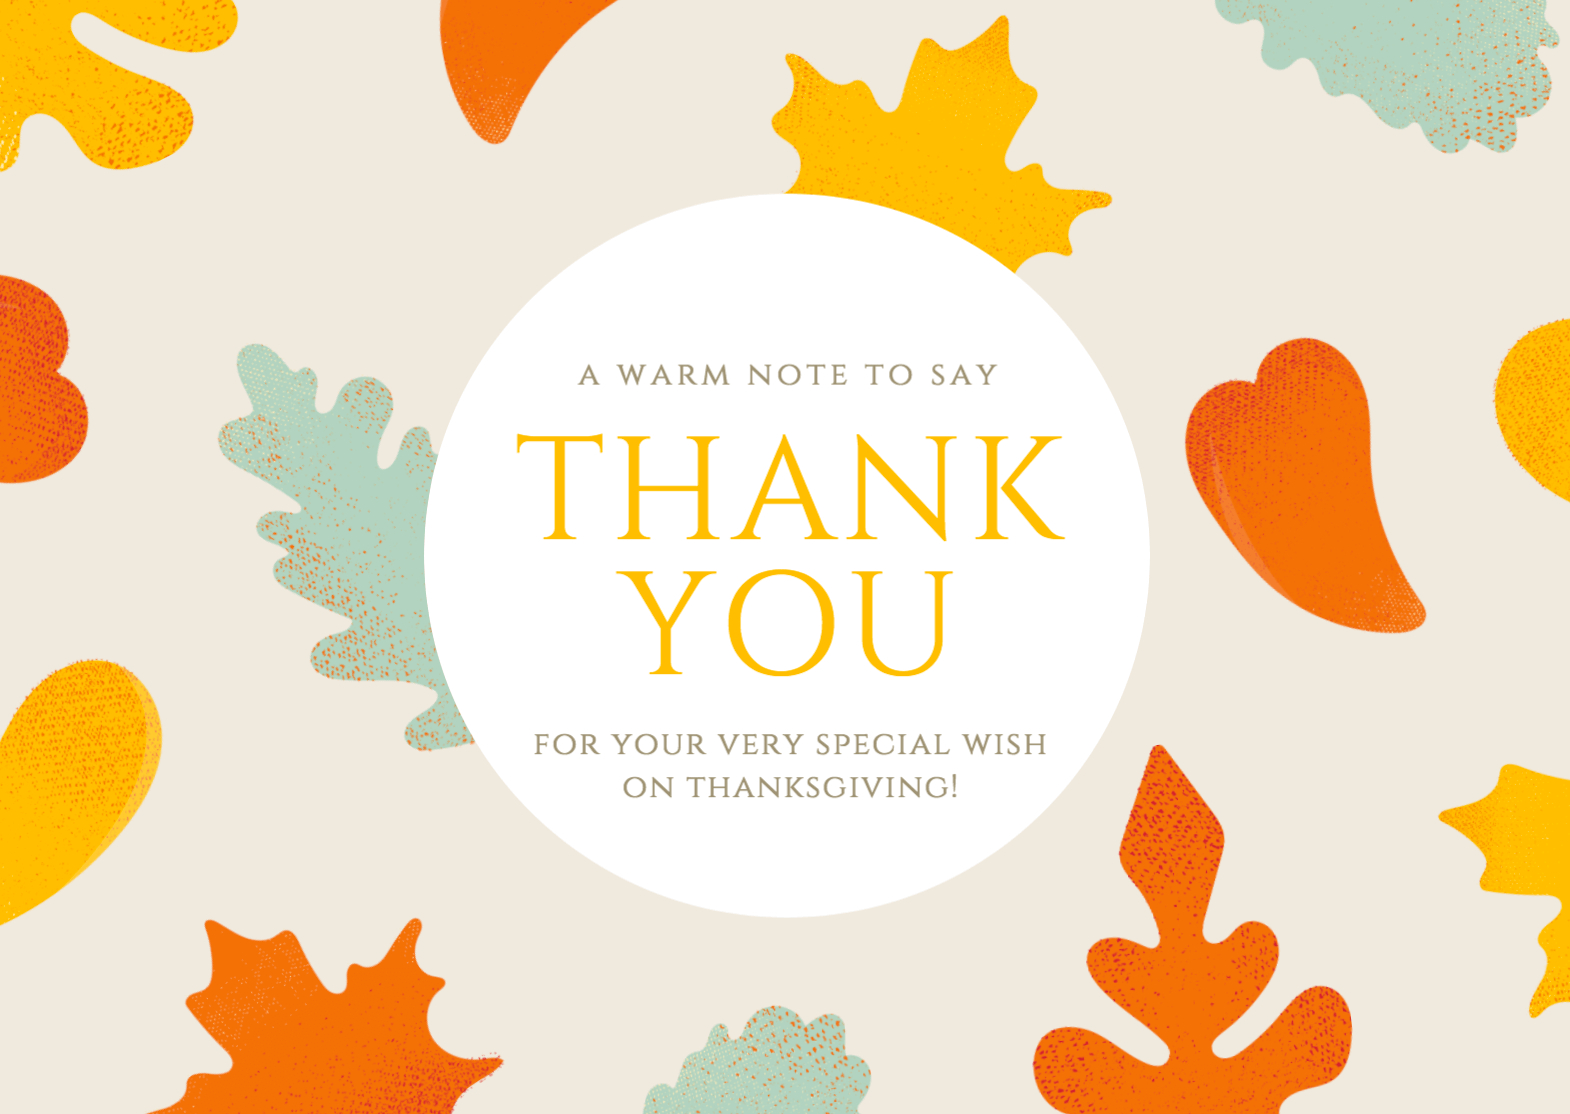 Free Thank You Card Maker - Canva - Free Personalized Thank You Cards Printable